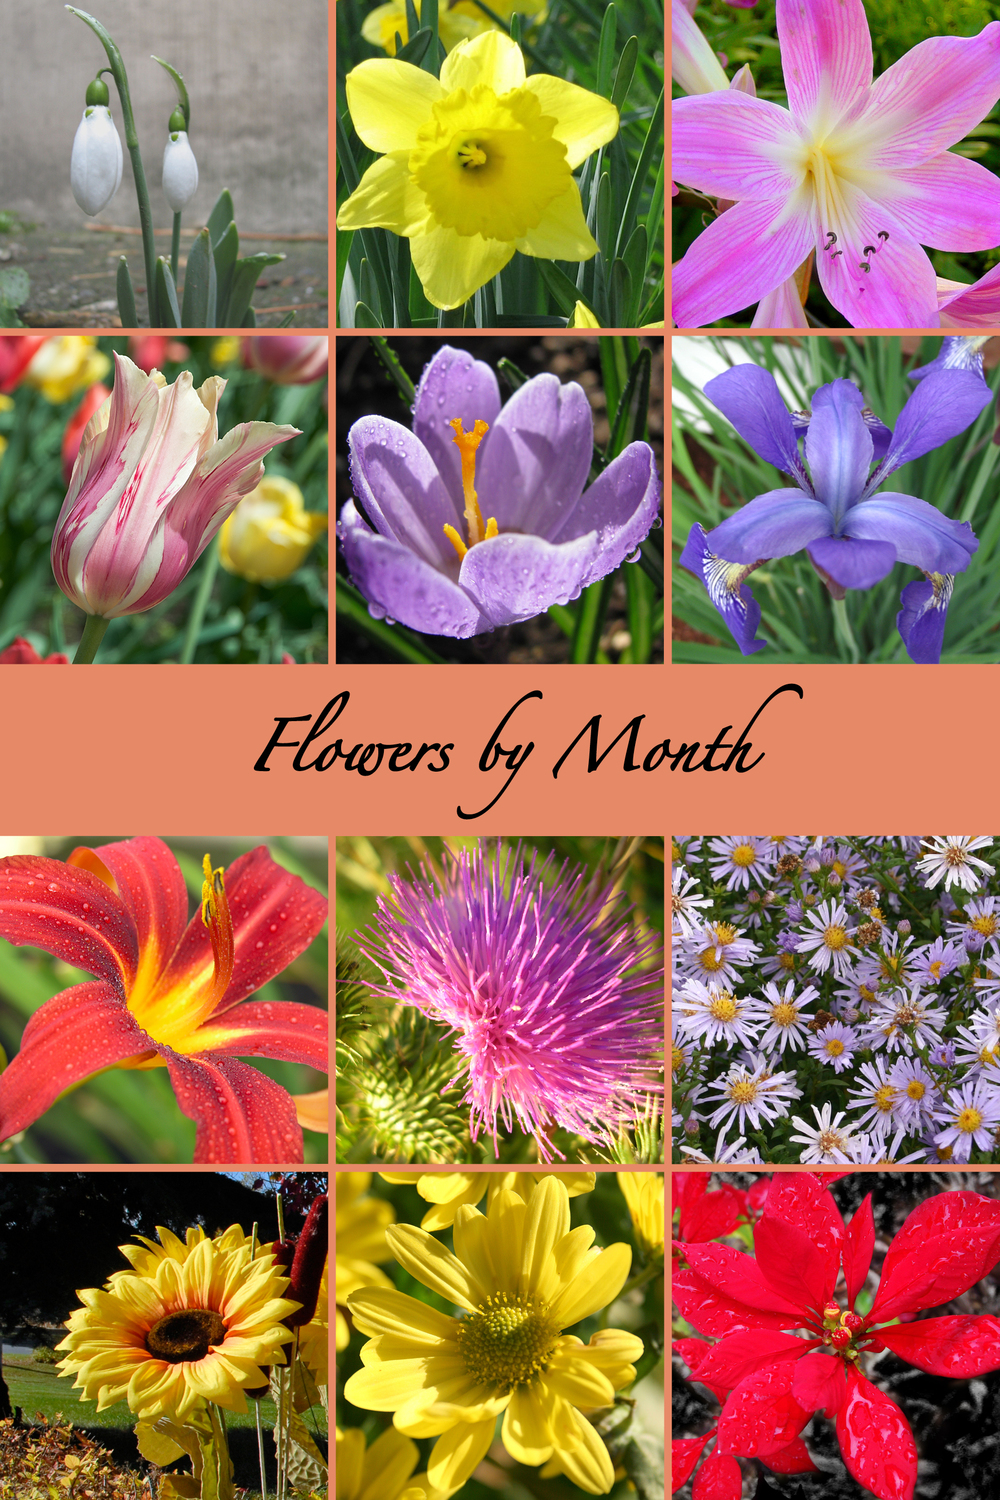 Flowers by Month